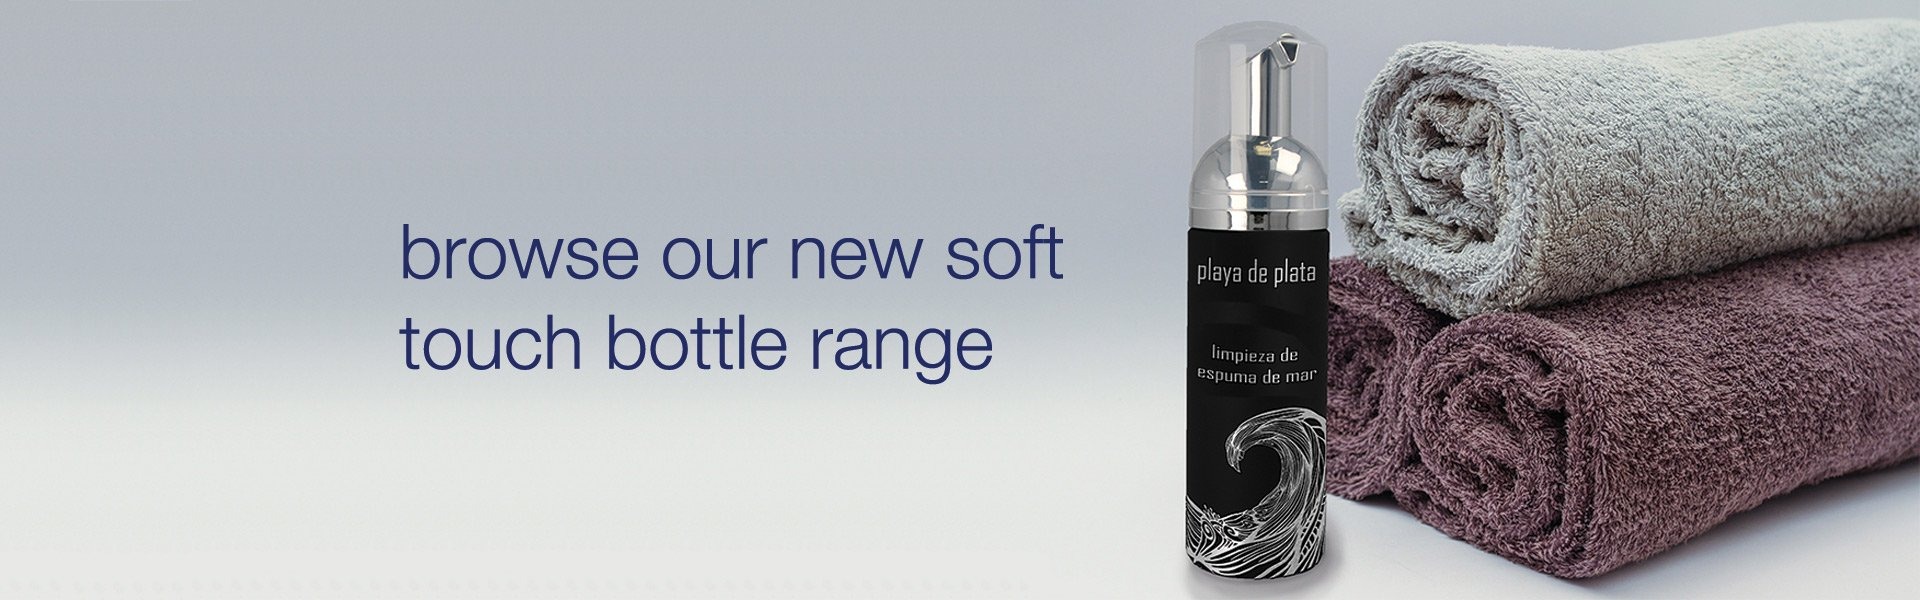 Soft touch bottle